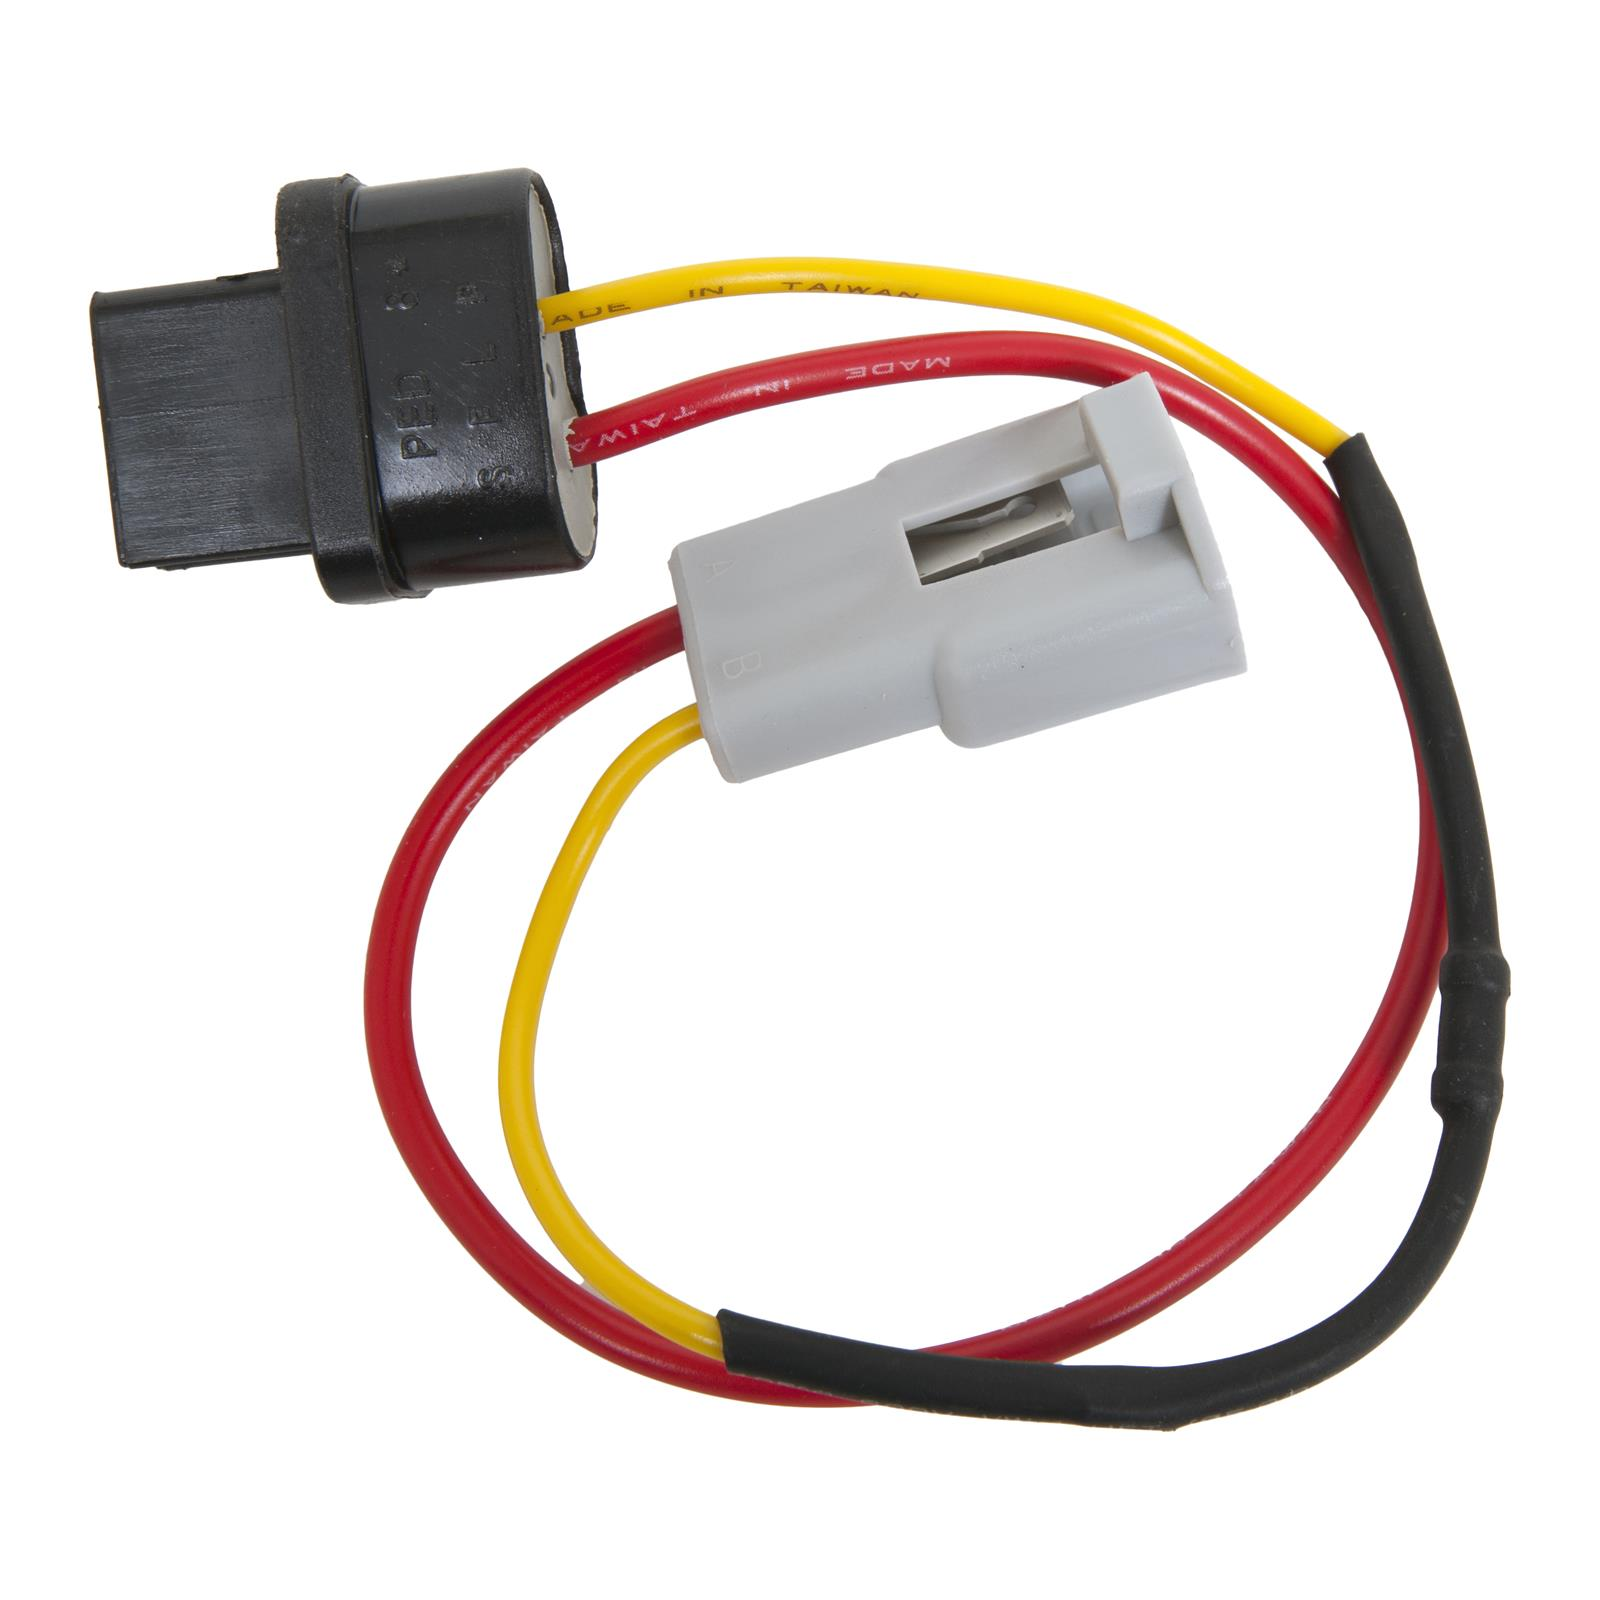 ado pt2145_xl acdelco replacement wiring harness connectors pt2145 free wiring harness connectors at alyssarenee.co